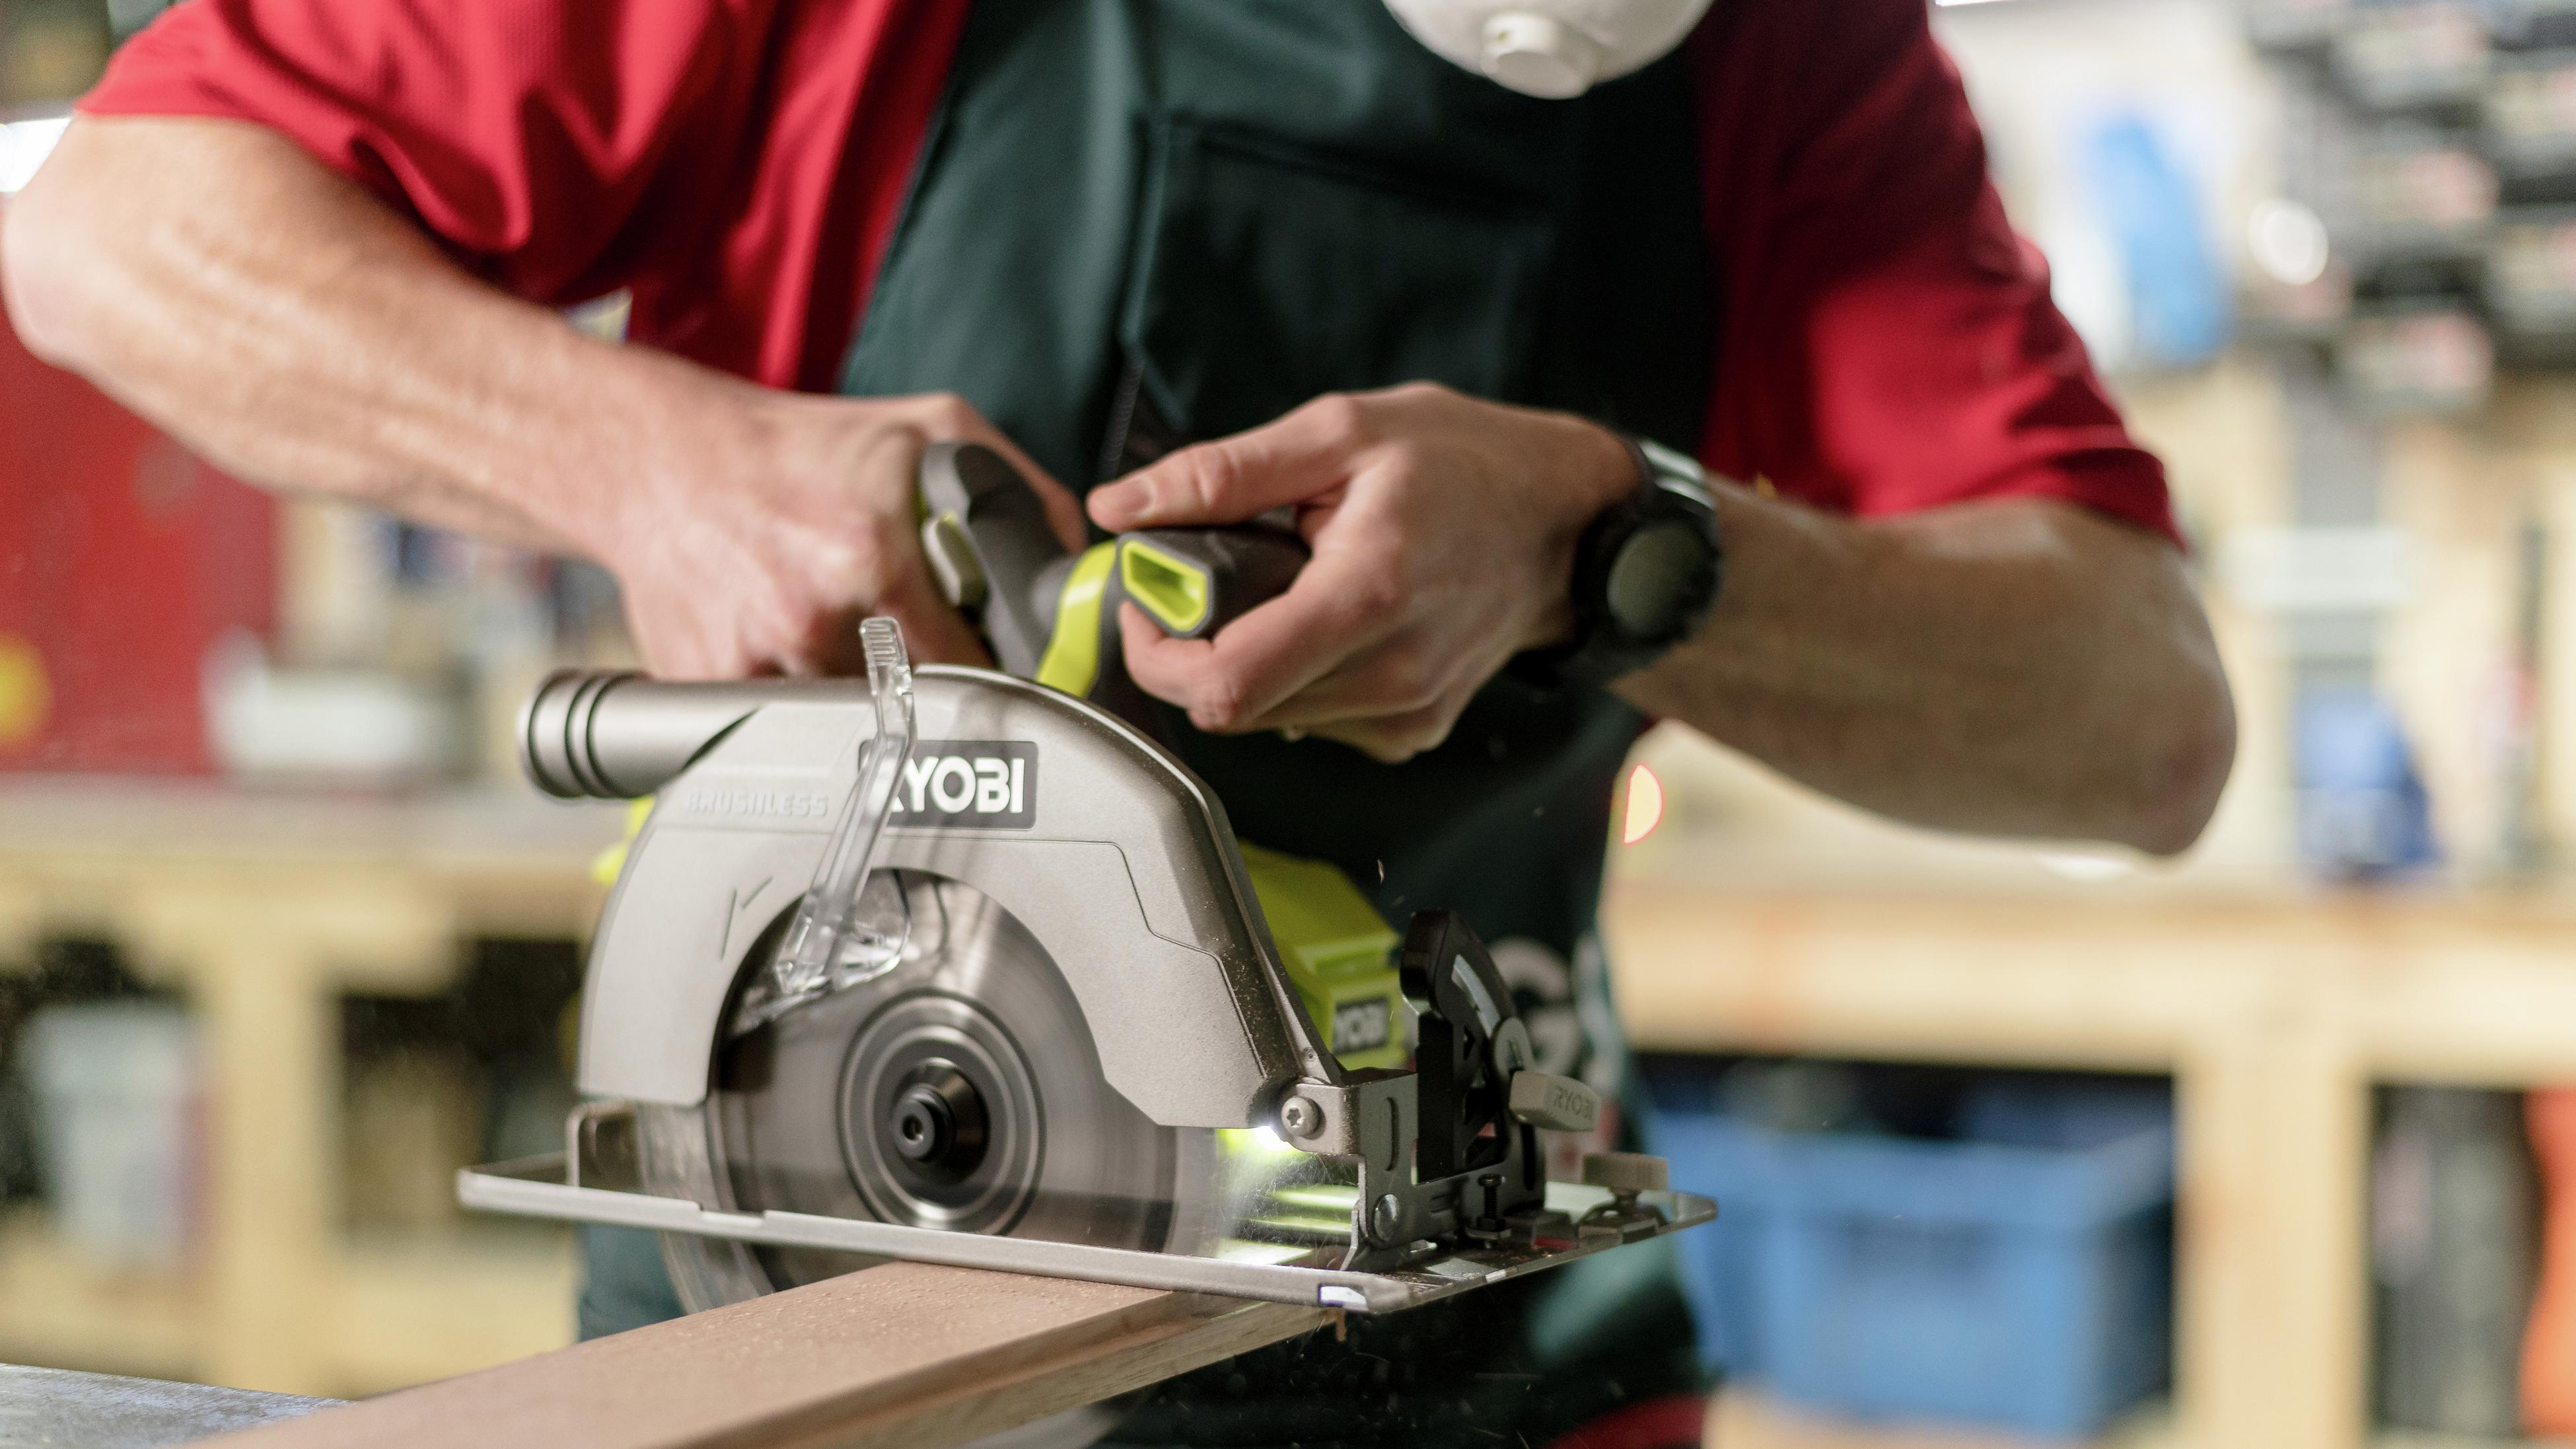 TM showing how to use a circular saw